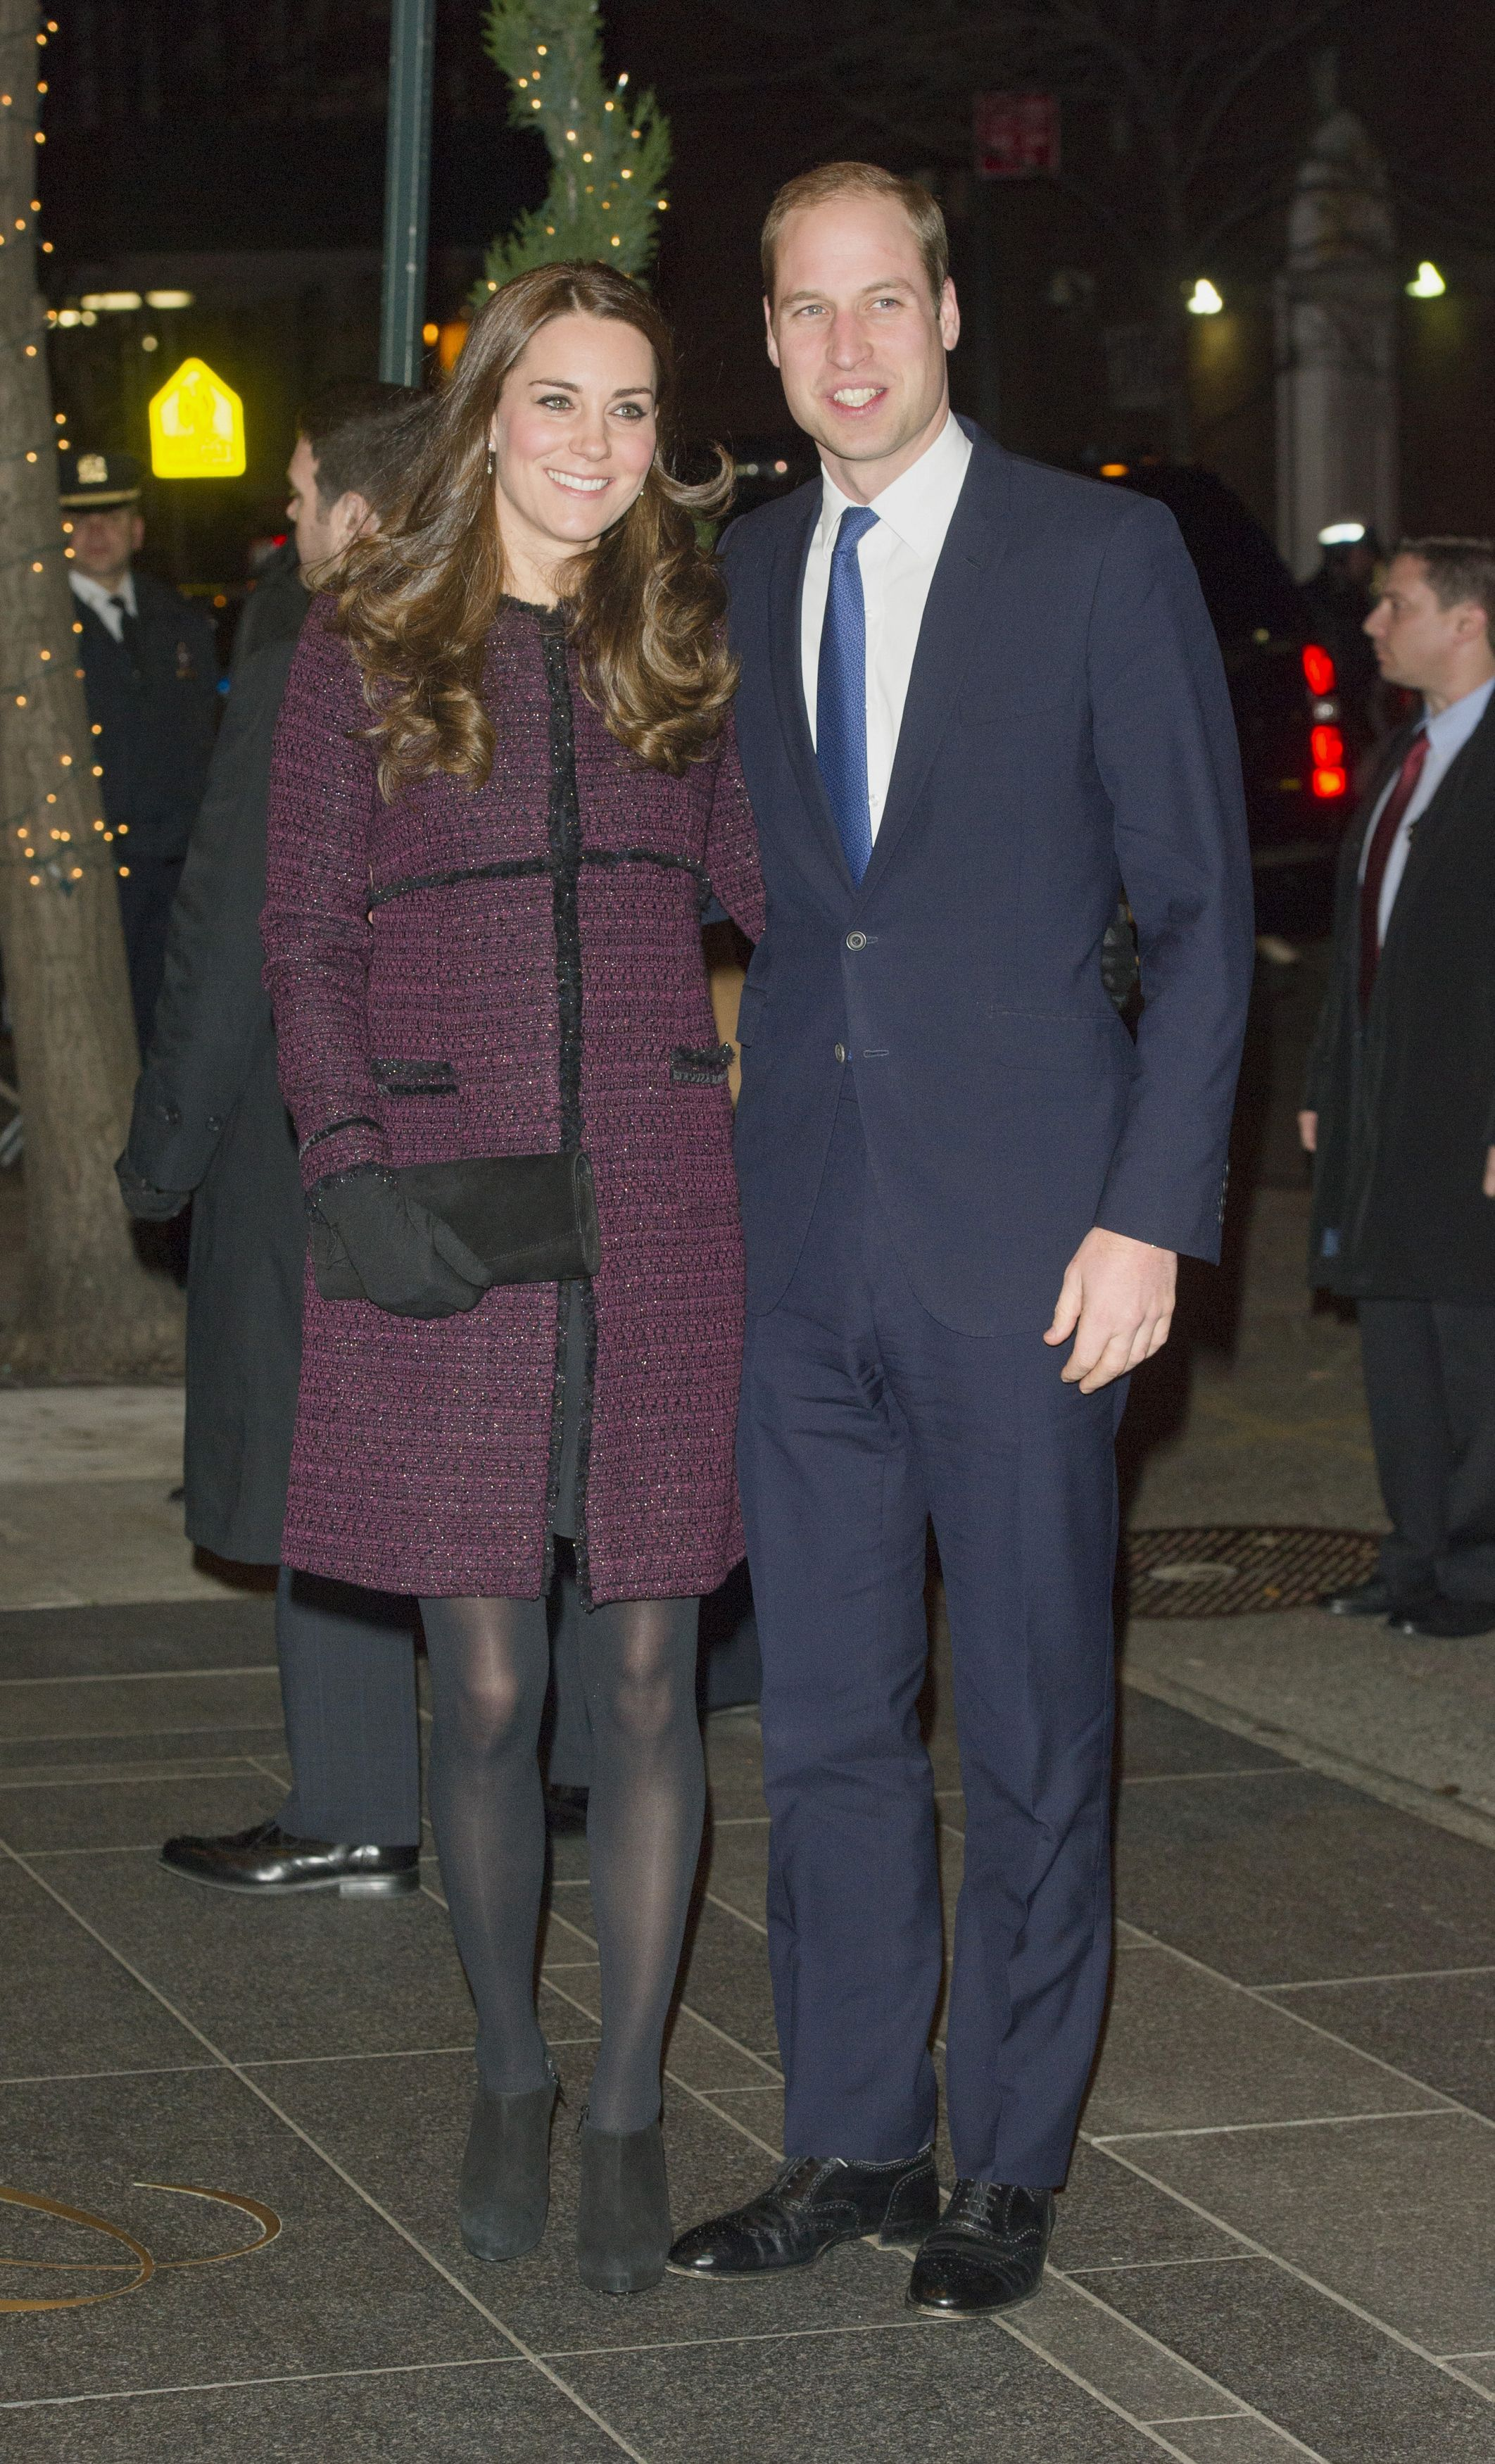 The Duke and Duchess of Cambridge in New York City